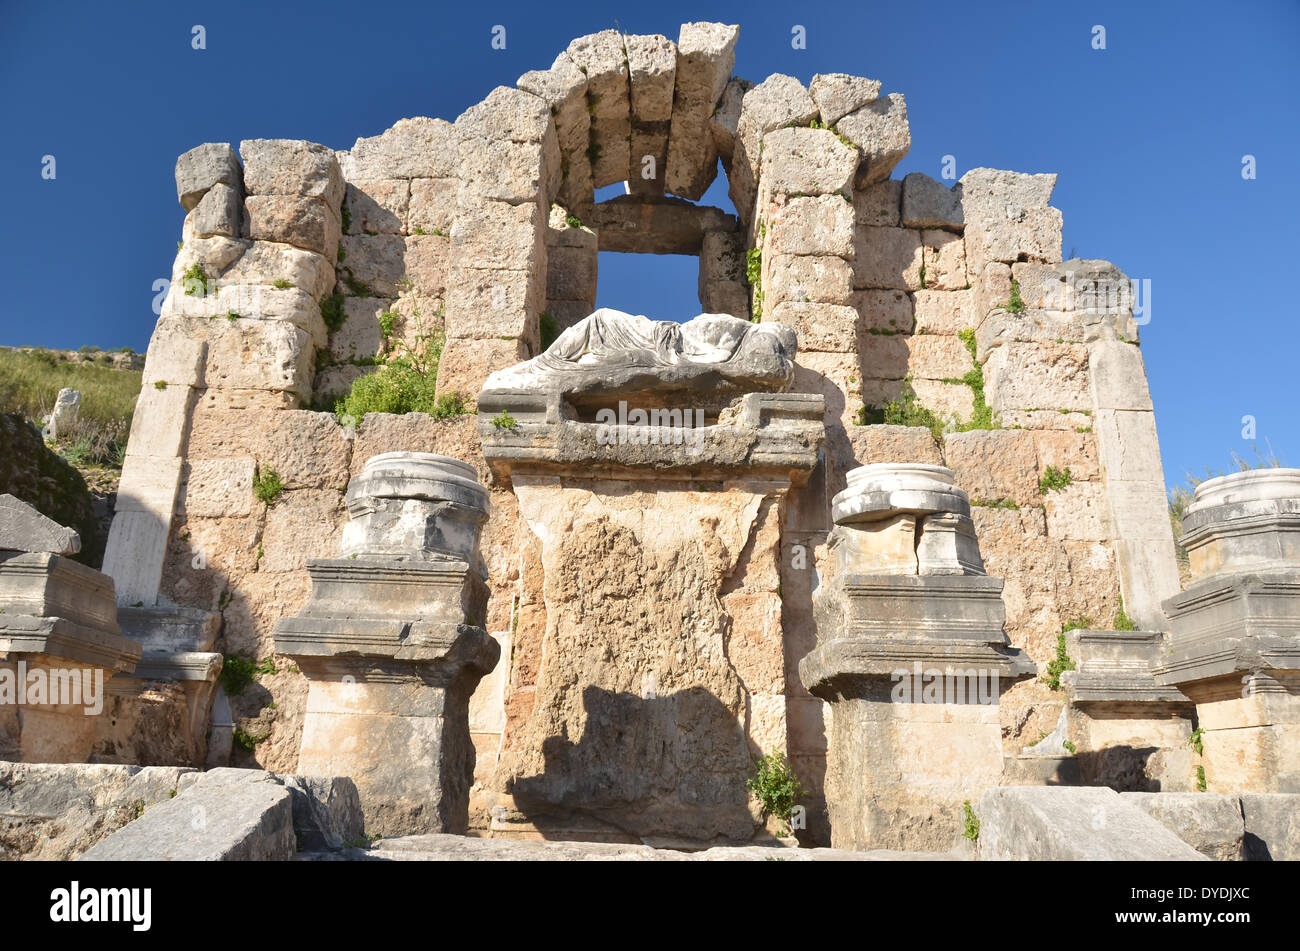 greece europe greek architecture ancient greece europe stone classic